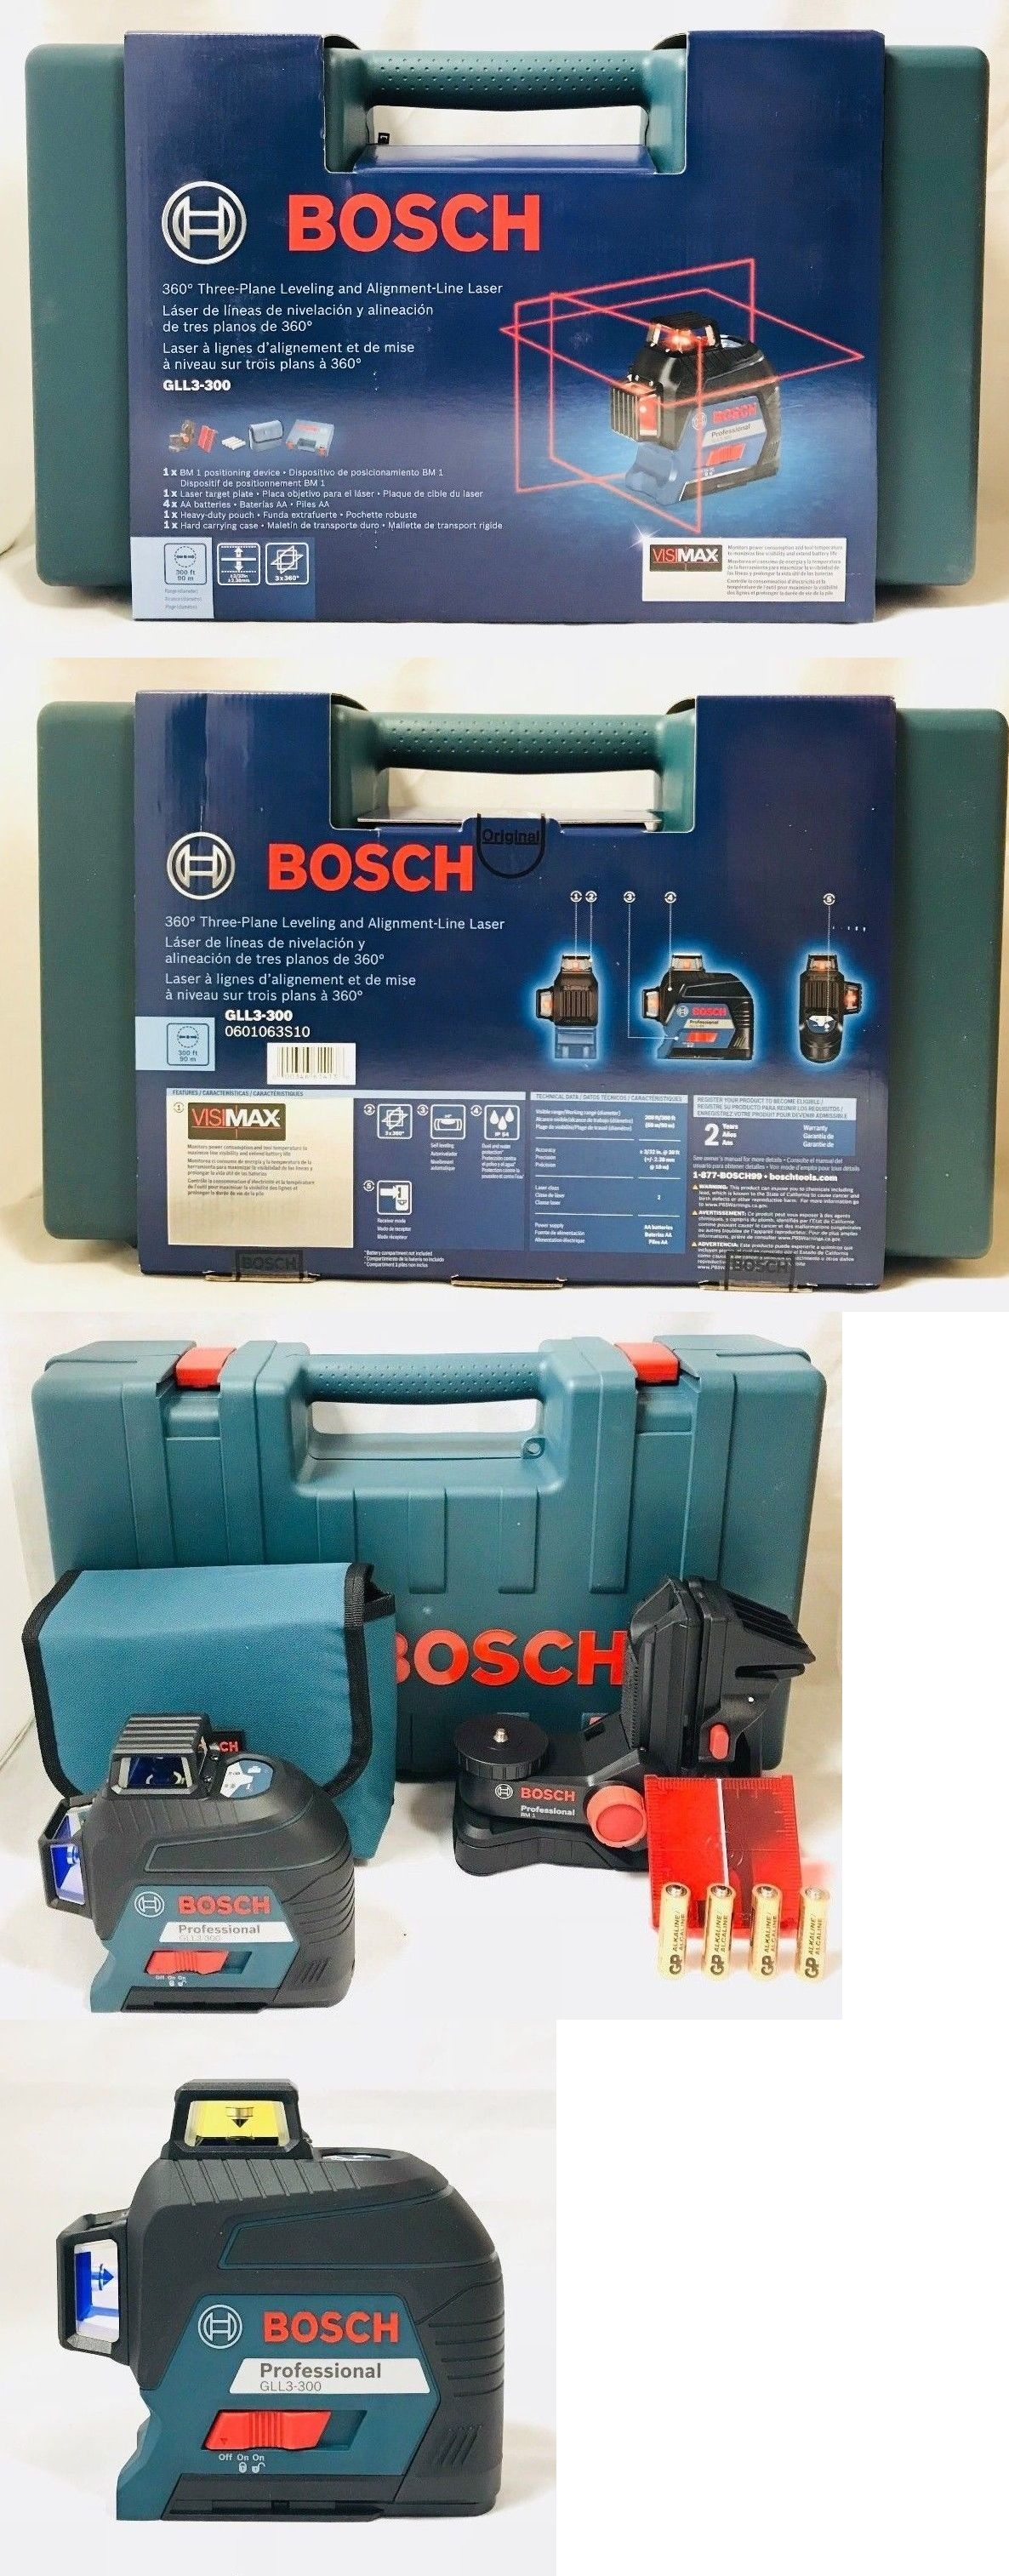 Laser Measuring Tools 126396 Bosch Gll3 300 360 Degree Laser Level Replacing Upgrade The Bosch Gll3 80 Buy It Now Measuring Tools Bosch Laser Levels